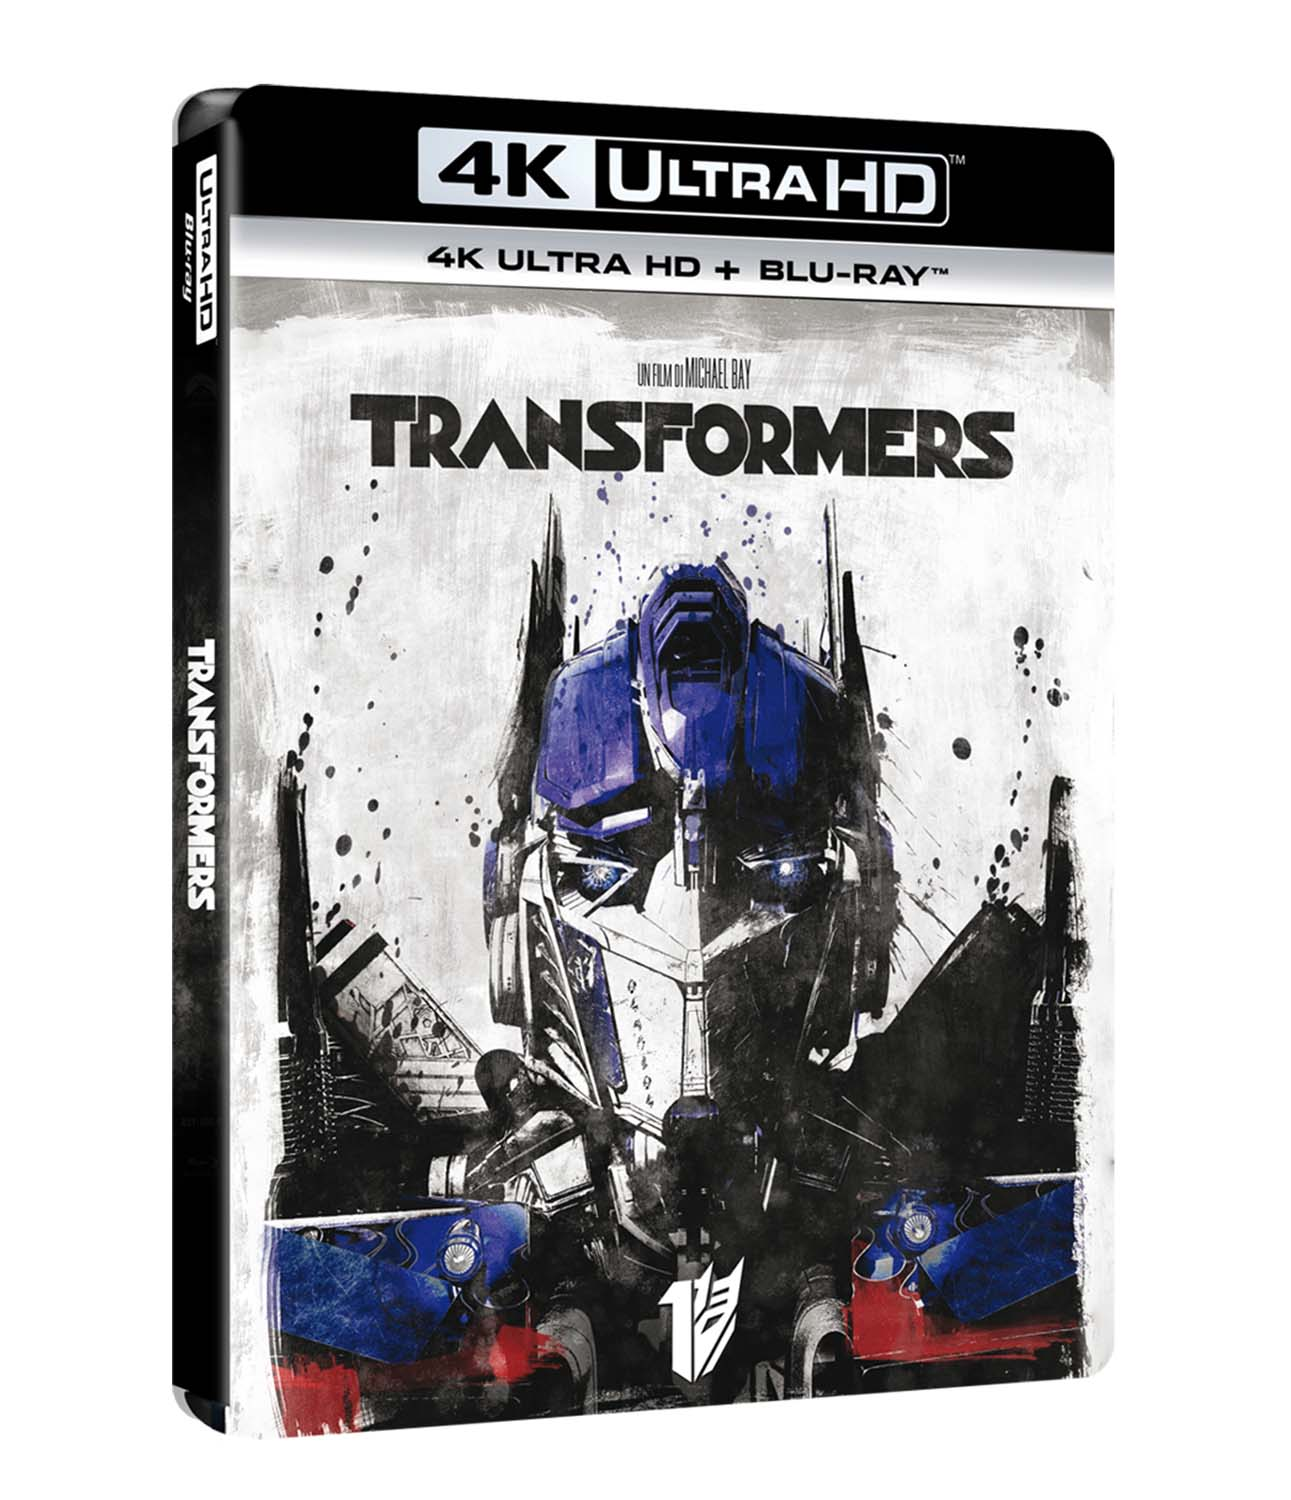 TRANSFORMERS - IL FILM (BLU-RAY 4K ULTRA HD+BLU-RAY)